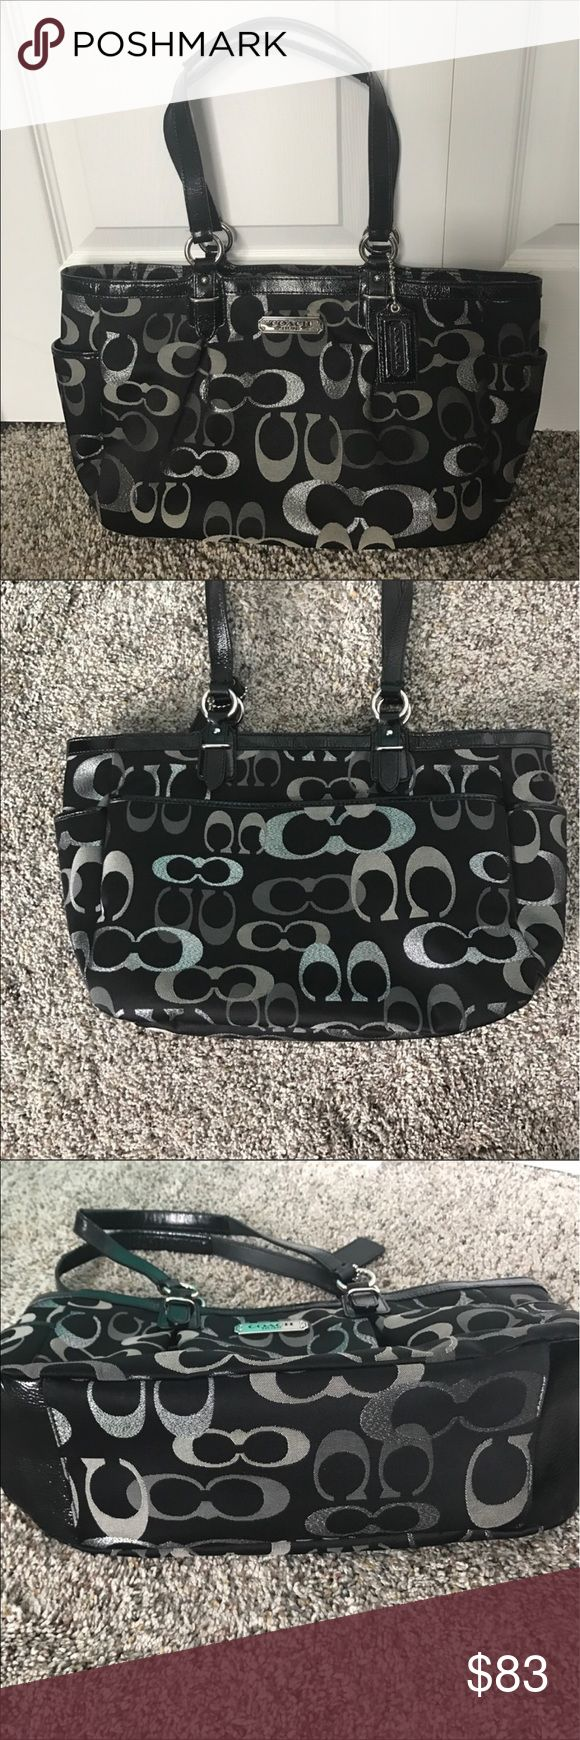 Coach tote bag Coach tote bag. Black with gray and silver glittery C's. Only carried a few times. Like new condition. Approximately 14 inches length at bottom, 16 inches length at top, and about 9 inches height. Has two outside side pockets, and one large outside back pocket...perfect for a cellphone or even a planner. It also has one zipper pocket and two slip pockets inside. Zips to close at top. Coach Bags Totes